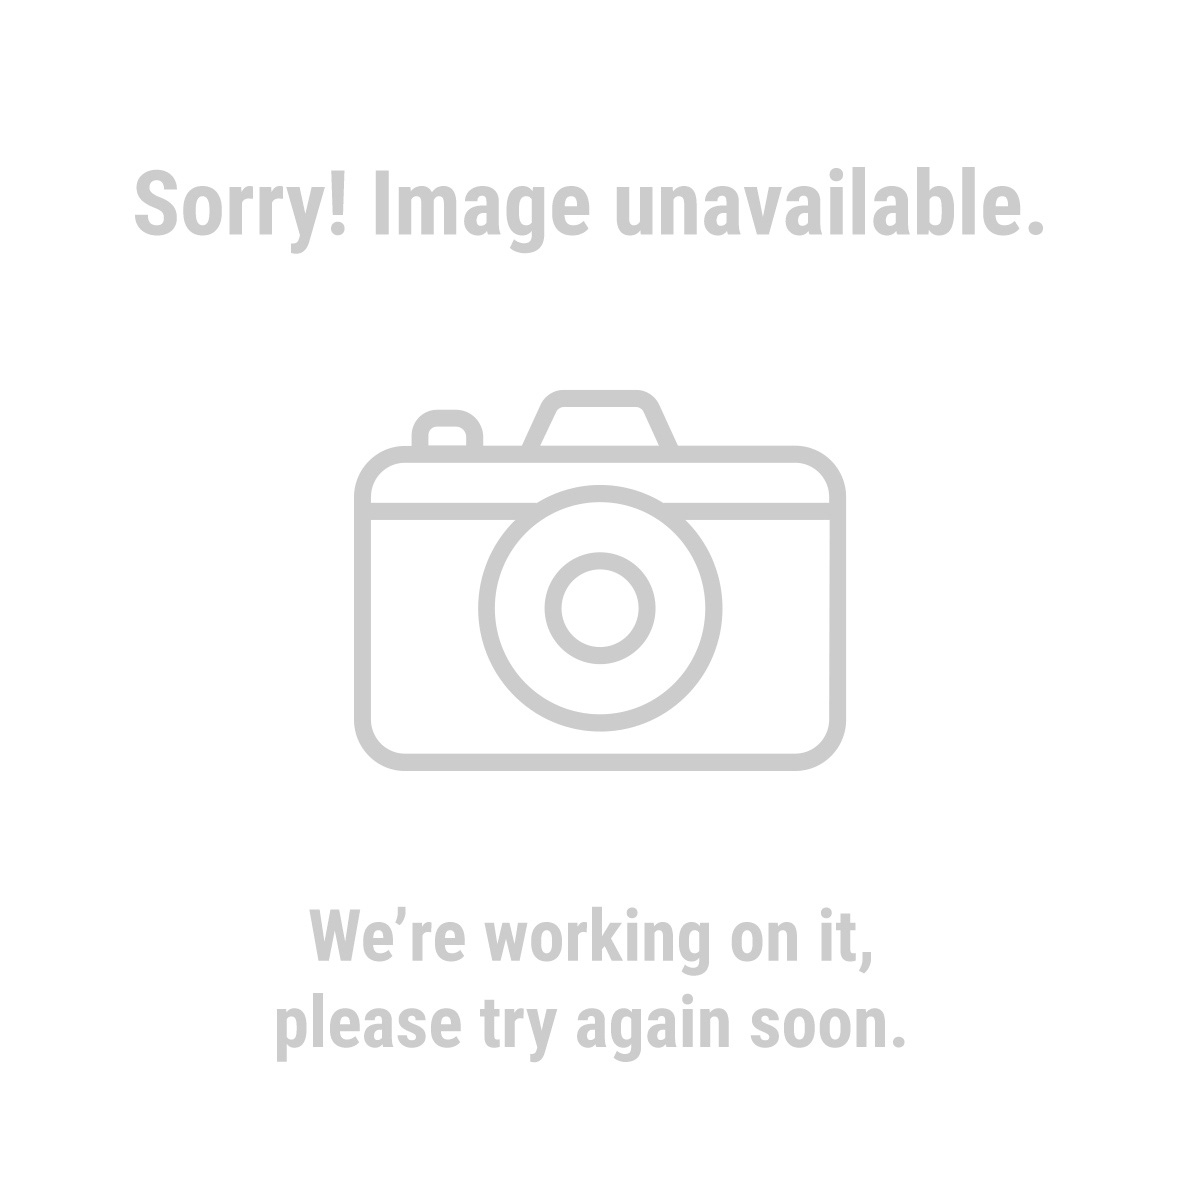 Central Pneumatic 68029 20 Gauge Wide Crown Air Stapler